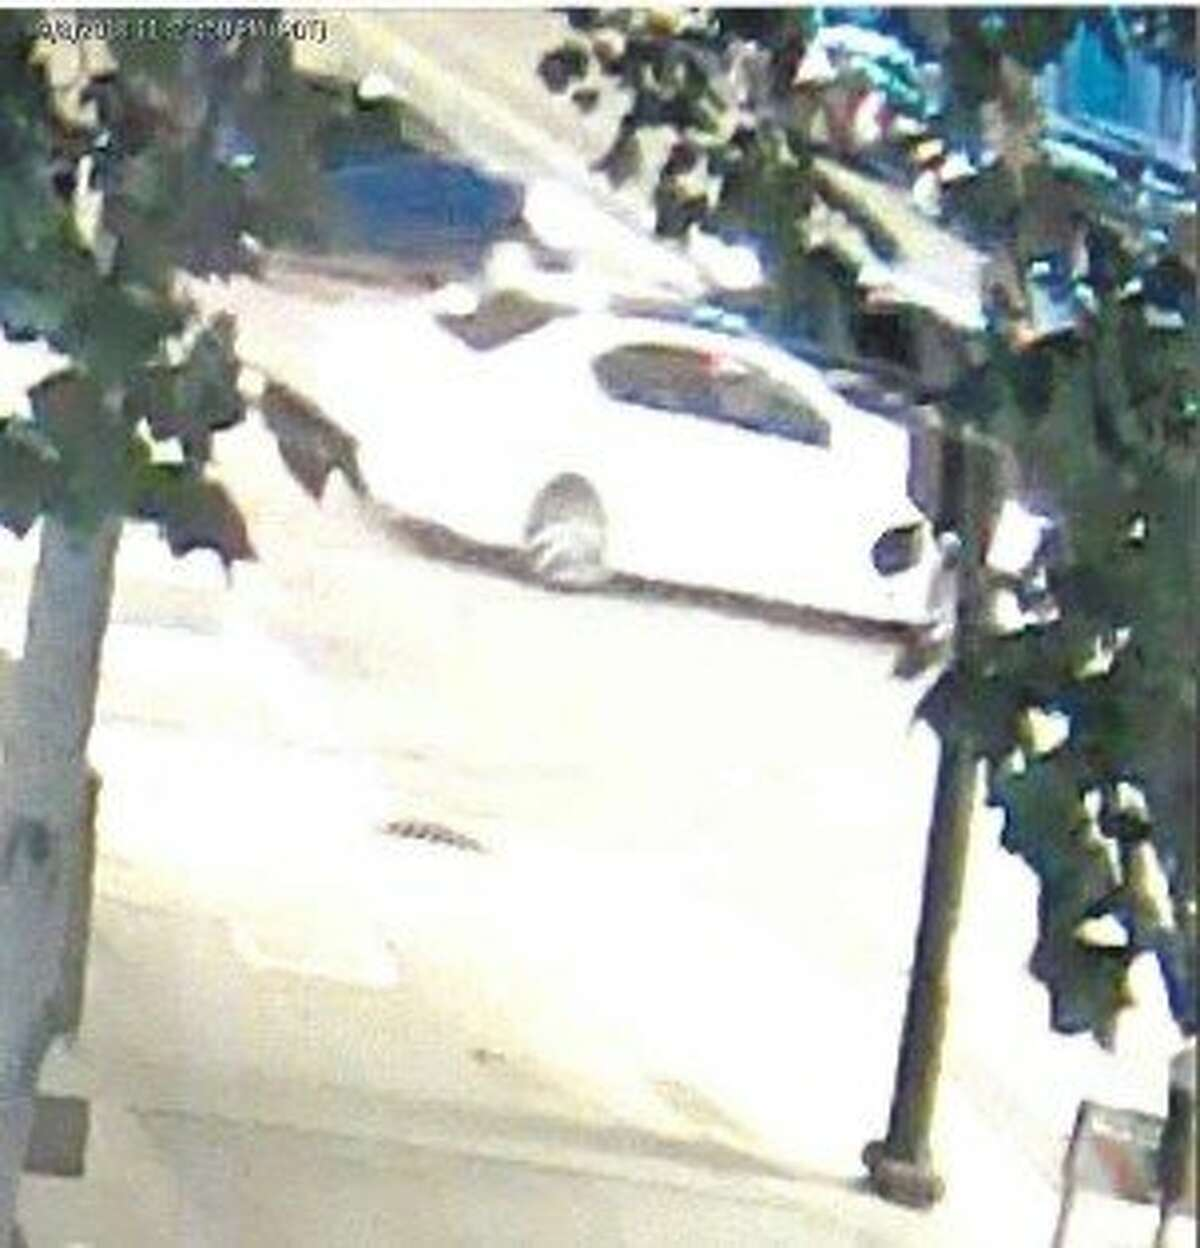 Police are asking the public's help in identifying a suspect who punched a man, causing severe head injuries, in San Francisco on the night of Sept. 8. Police released a sketch of the suspect and images of the white car he fled in.